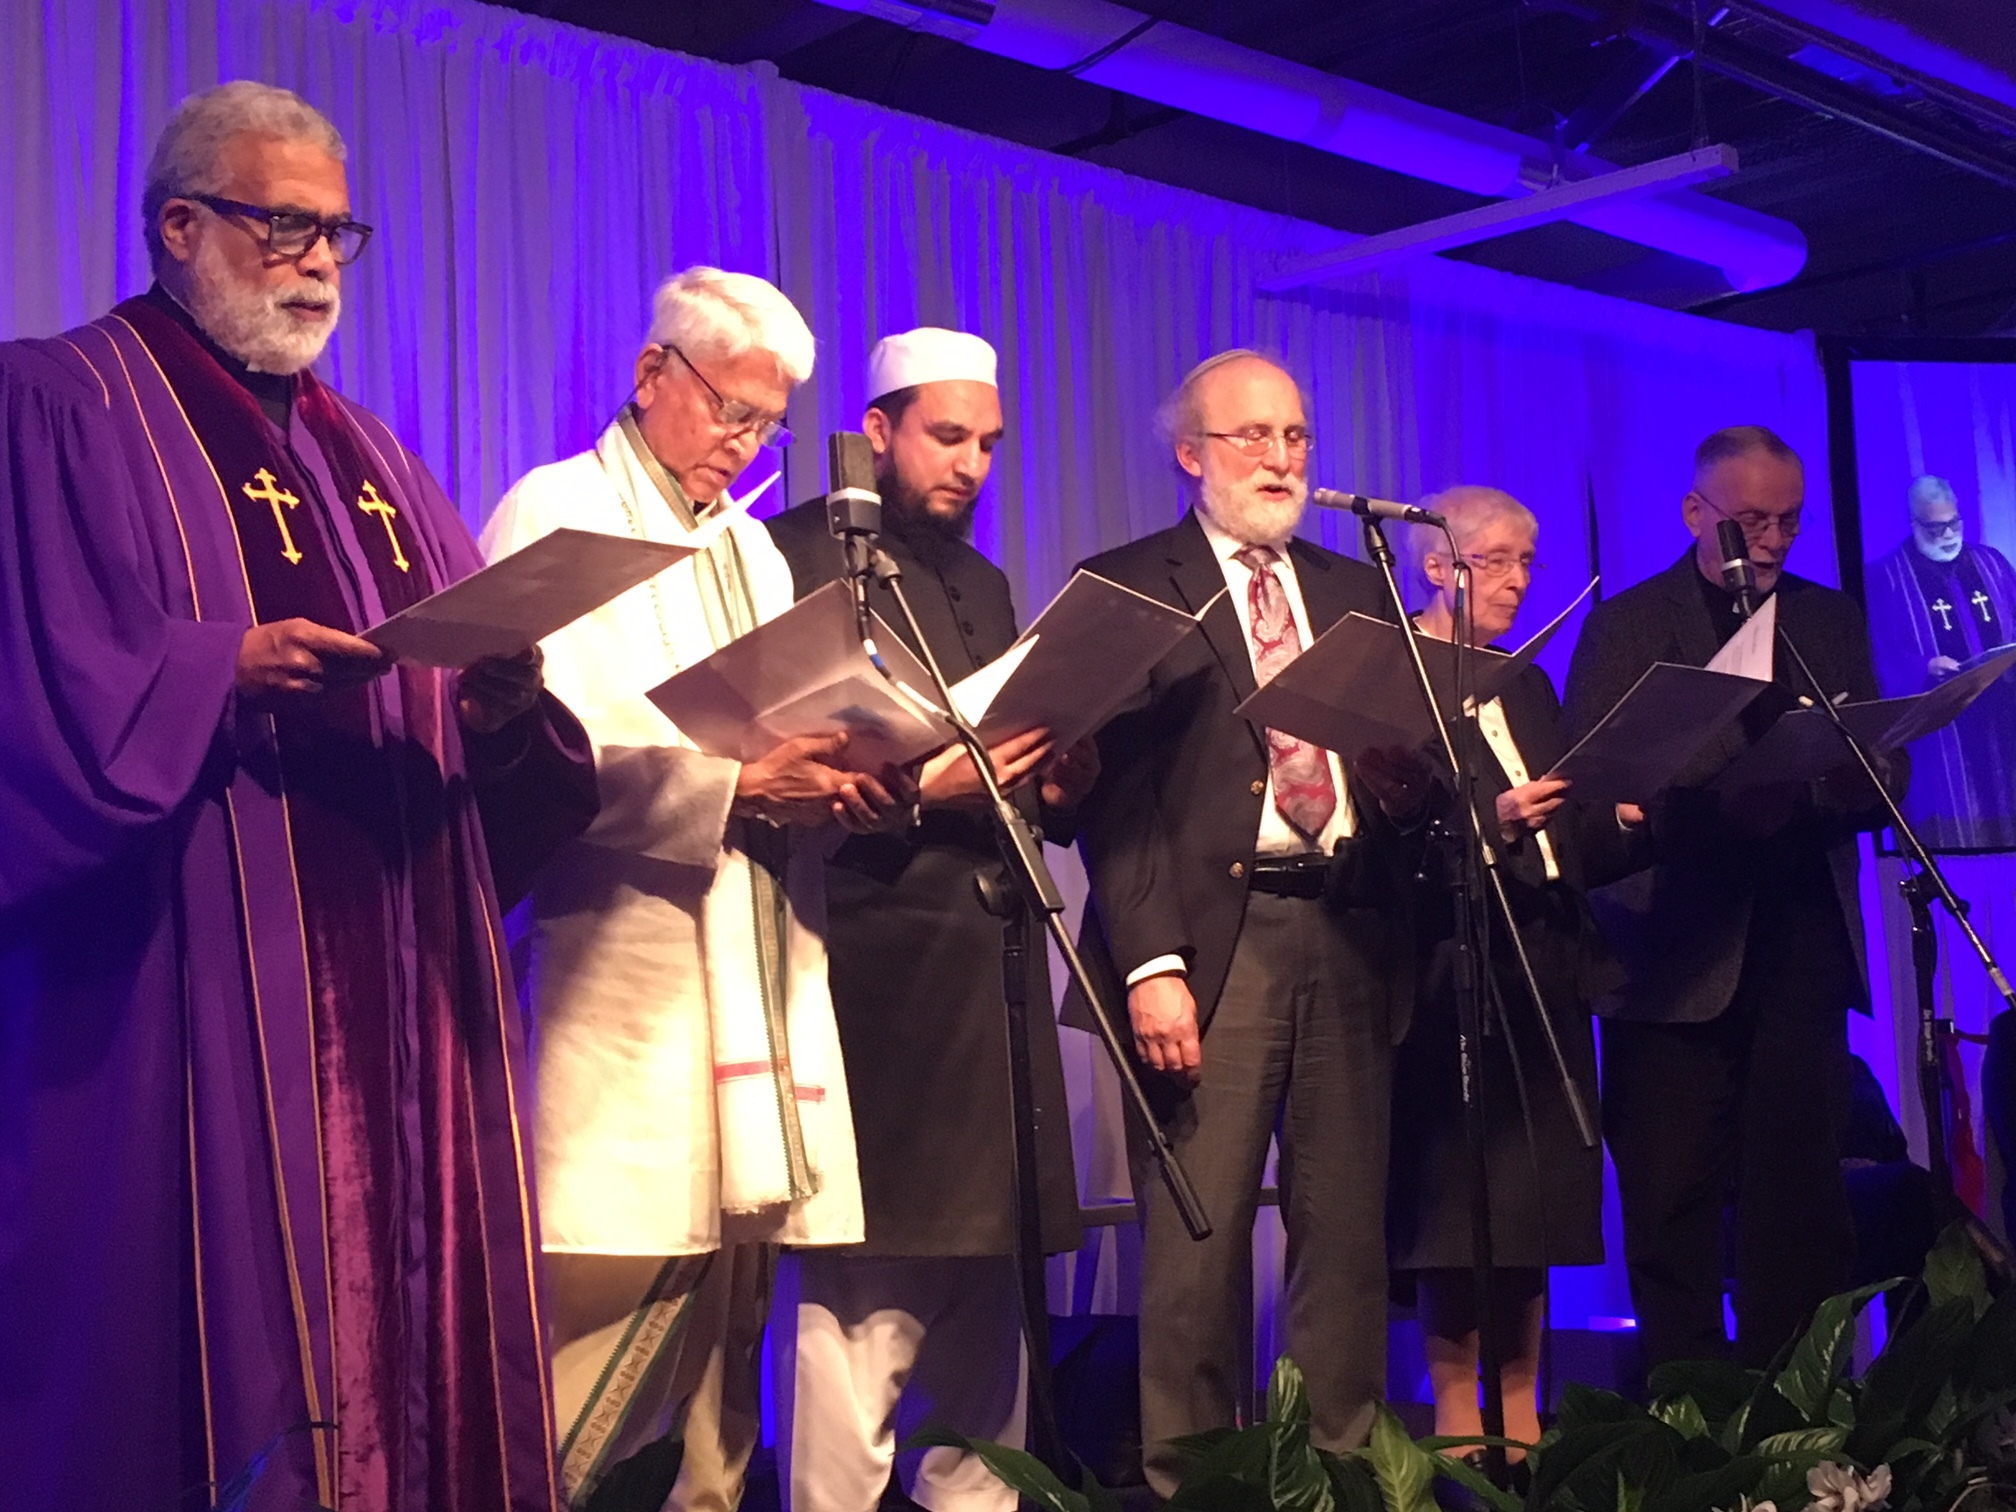 East End faith leaders offered the invocation. KITTYMERRILL